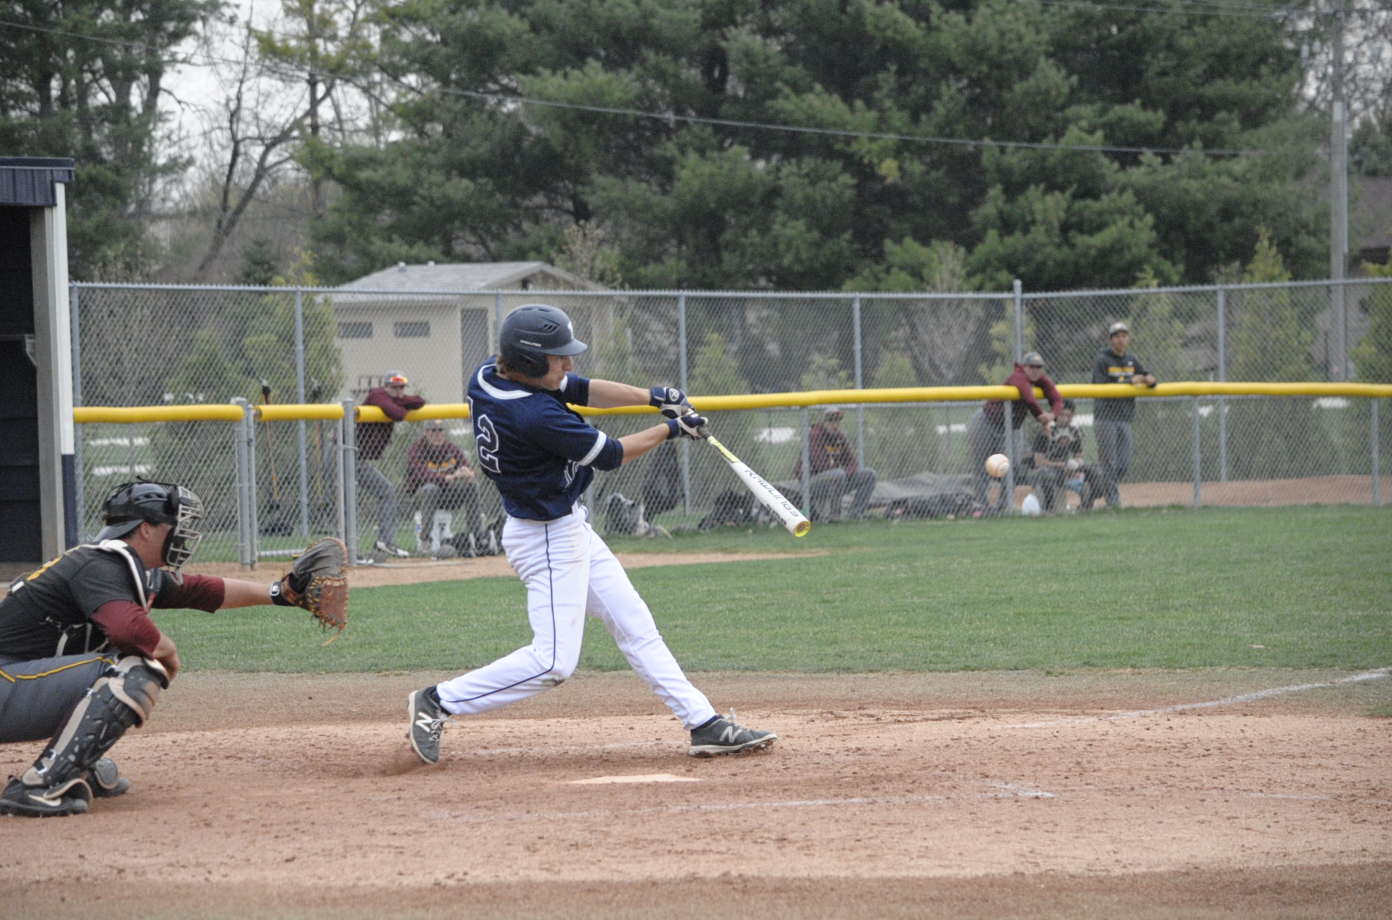 Calen Schwabe base hit